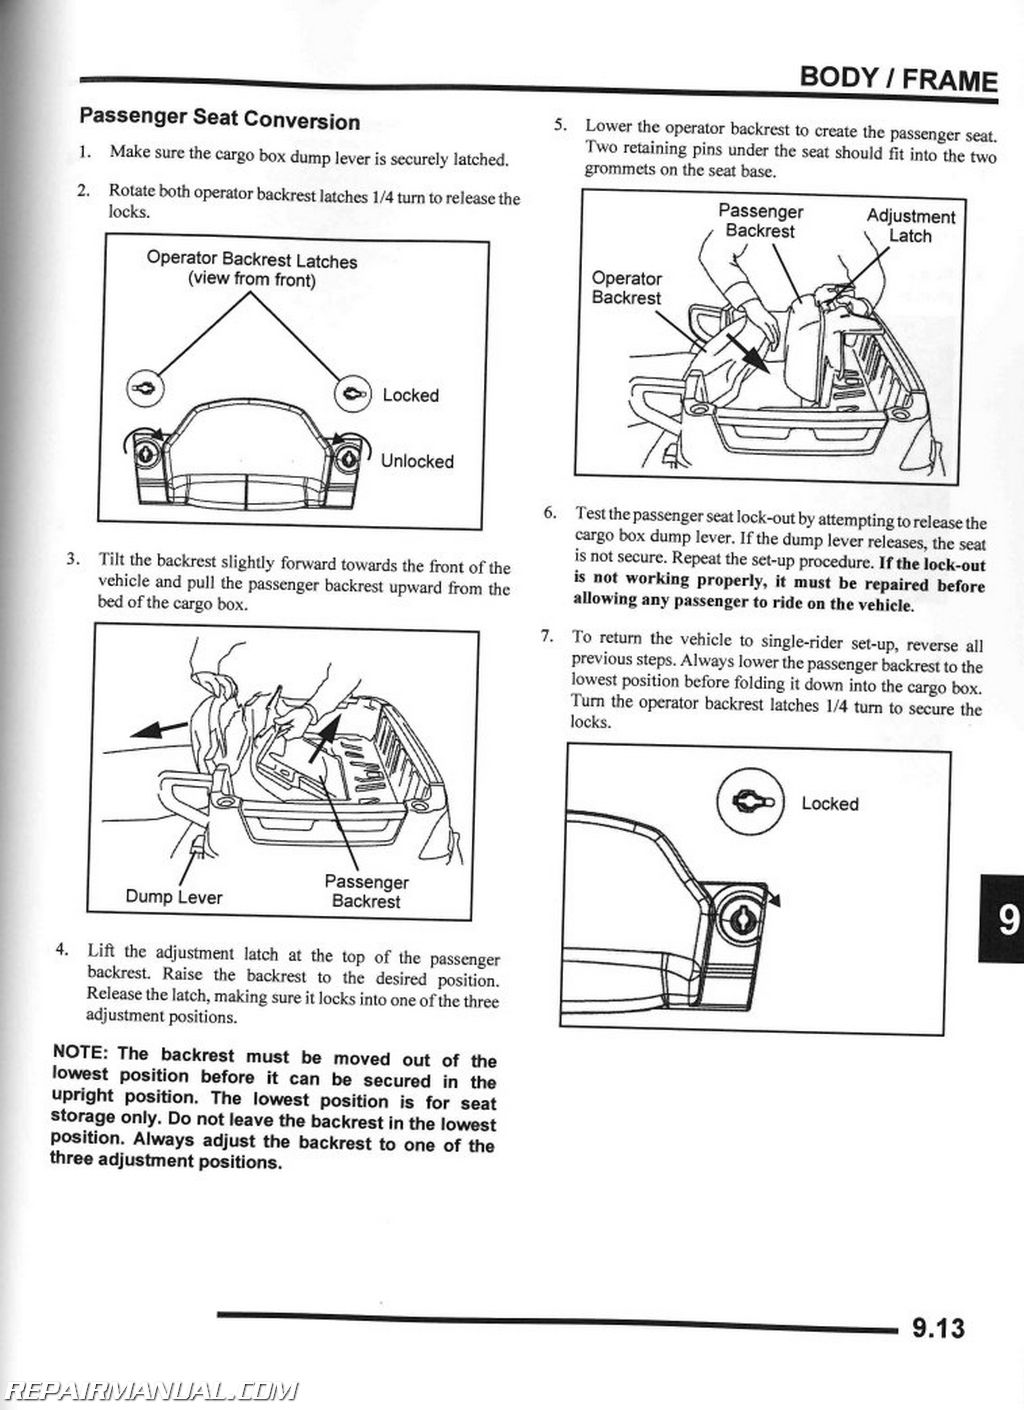 Official 2010 Polaris Sportsman Xp 550 Factory Service Manual 9922468 on honda fuel pump diagram